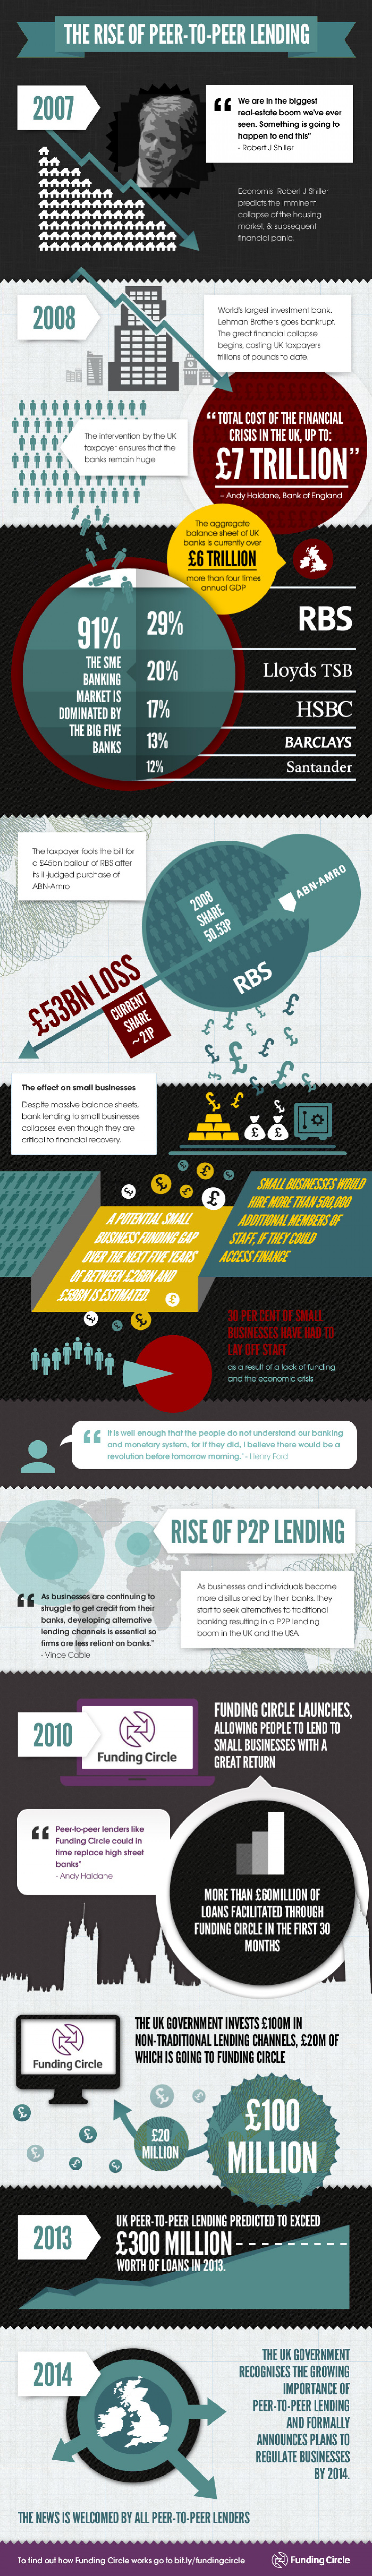 The Rise of Peer-to-Peer Lending Infographic